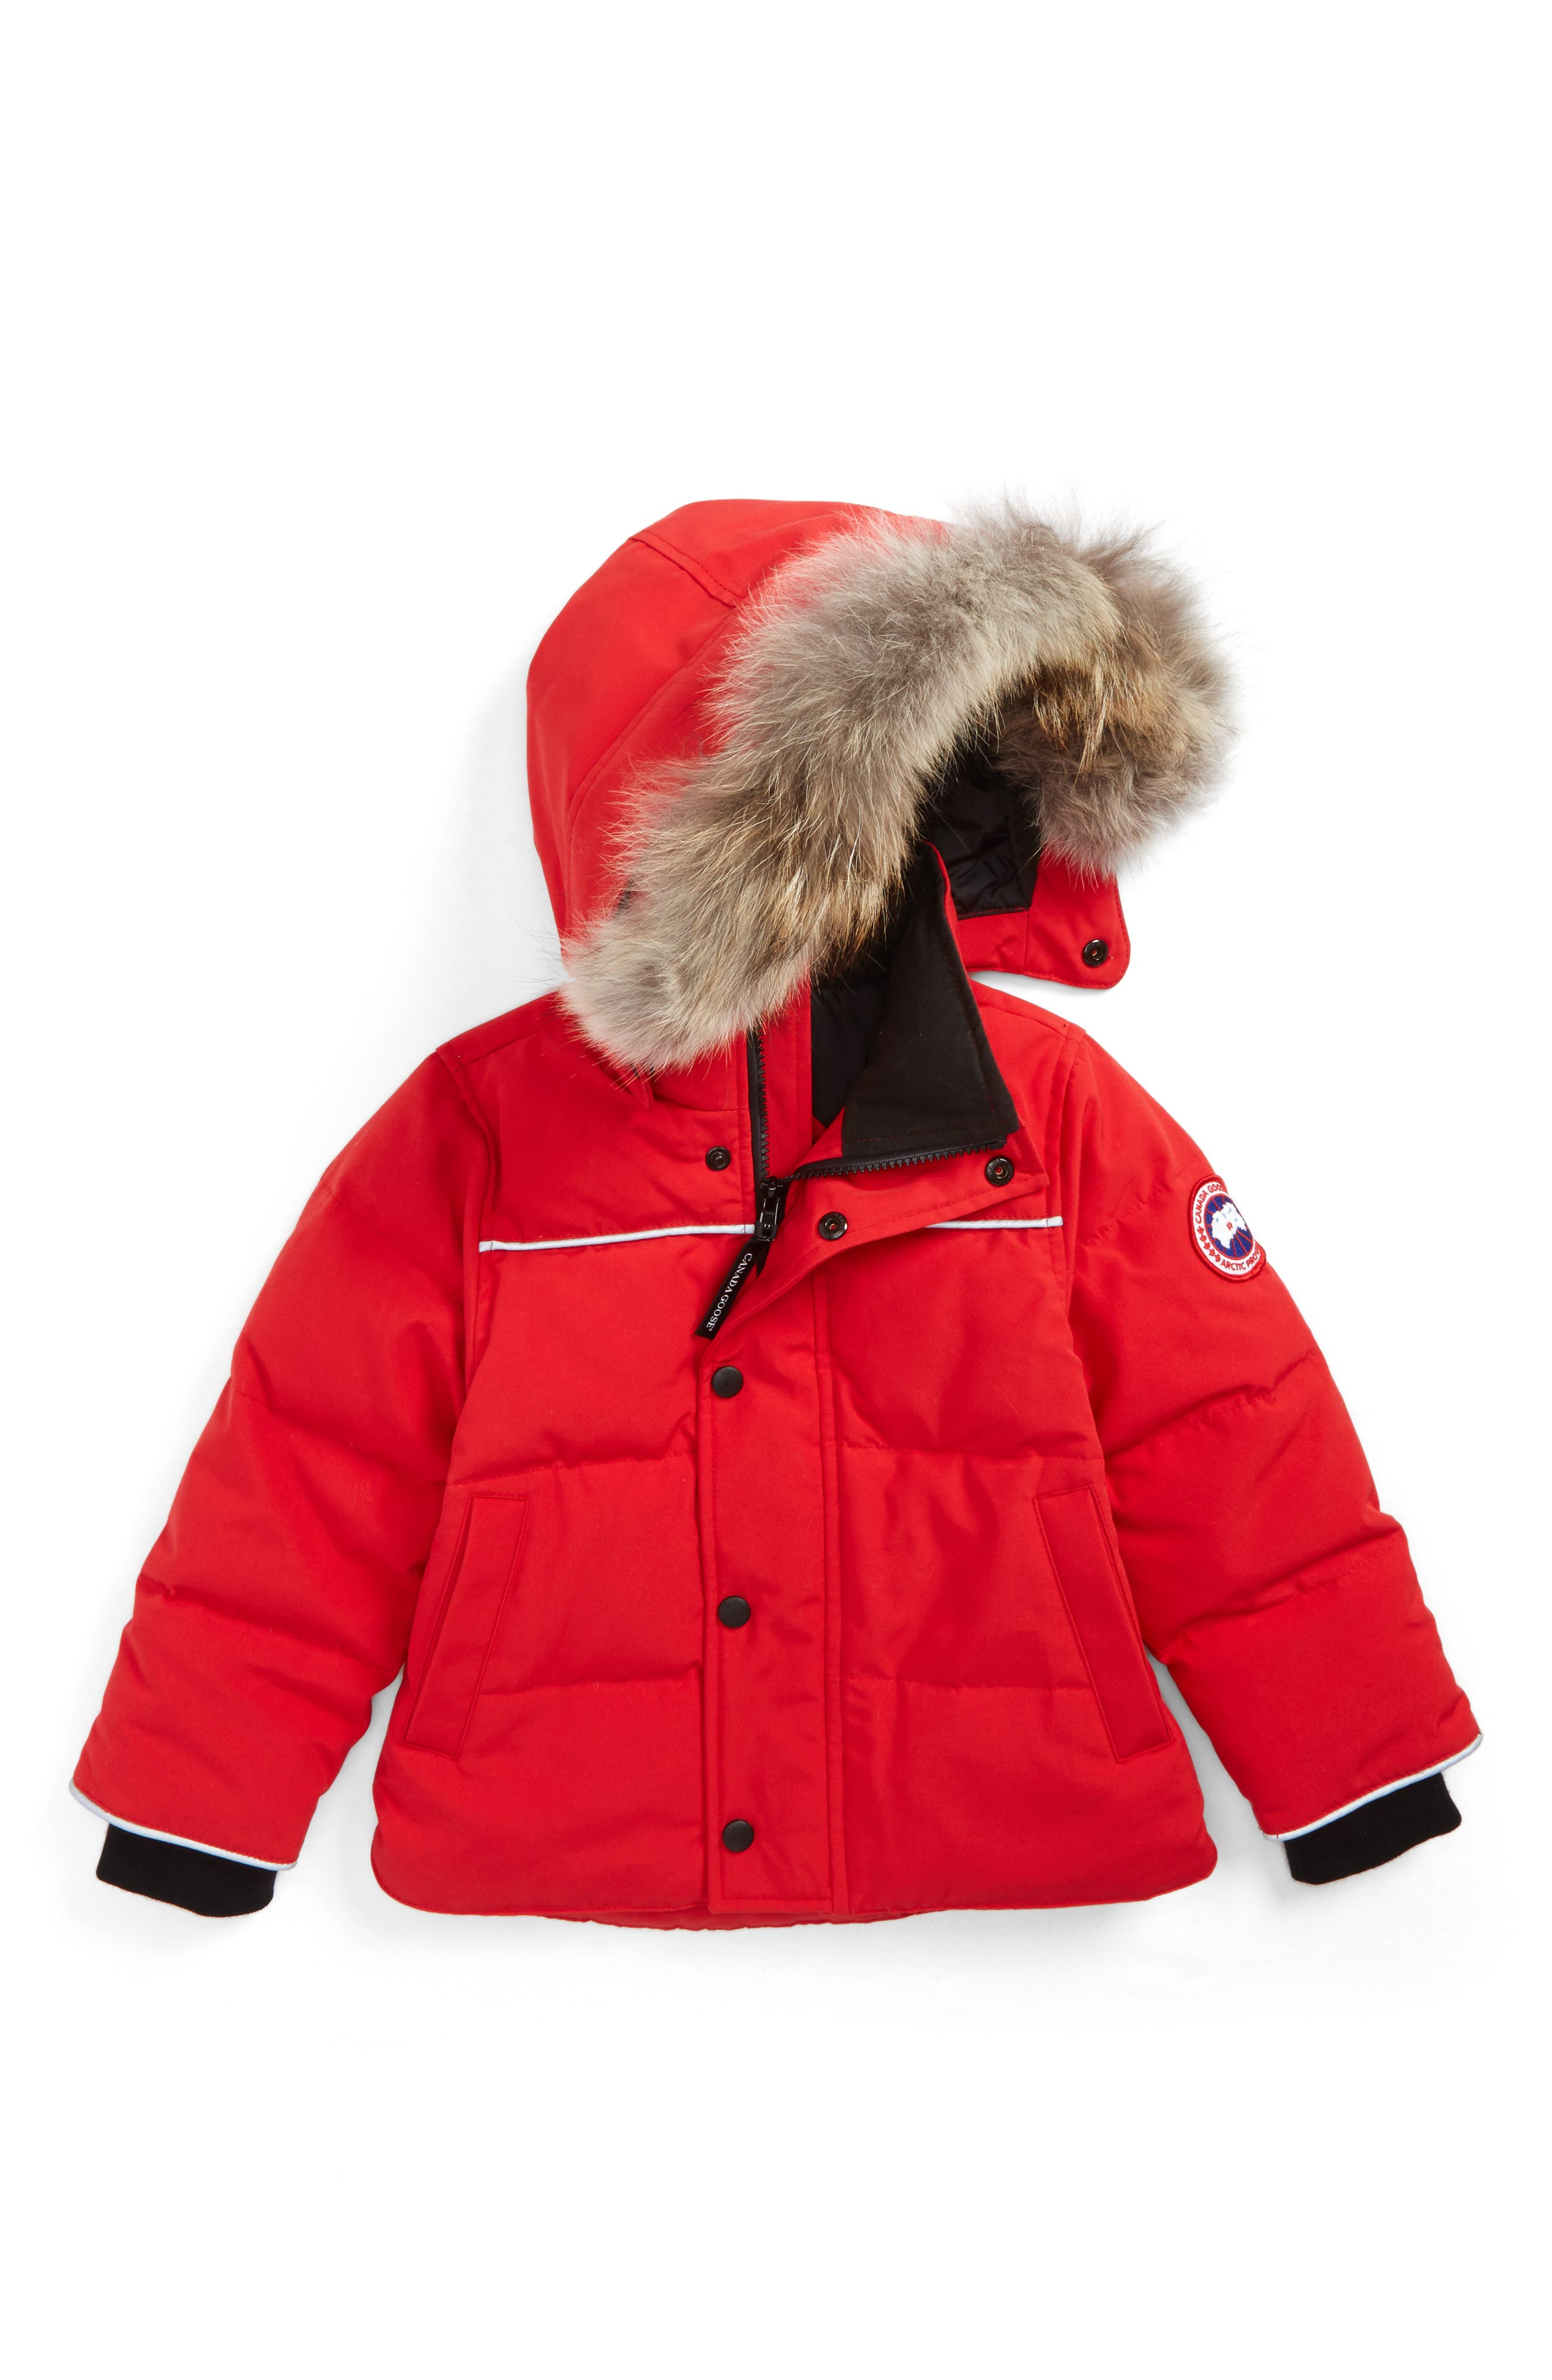 Canada Goose Snowy Owl Down Parka with Genuine Coyote Fur Trim (Toddler Kids & Little Kids)